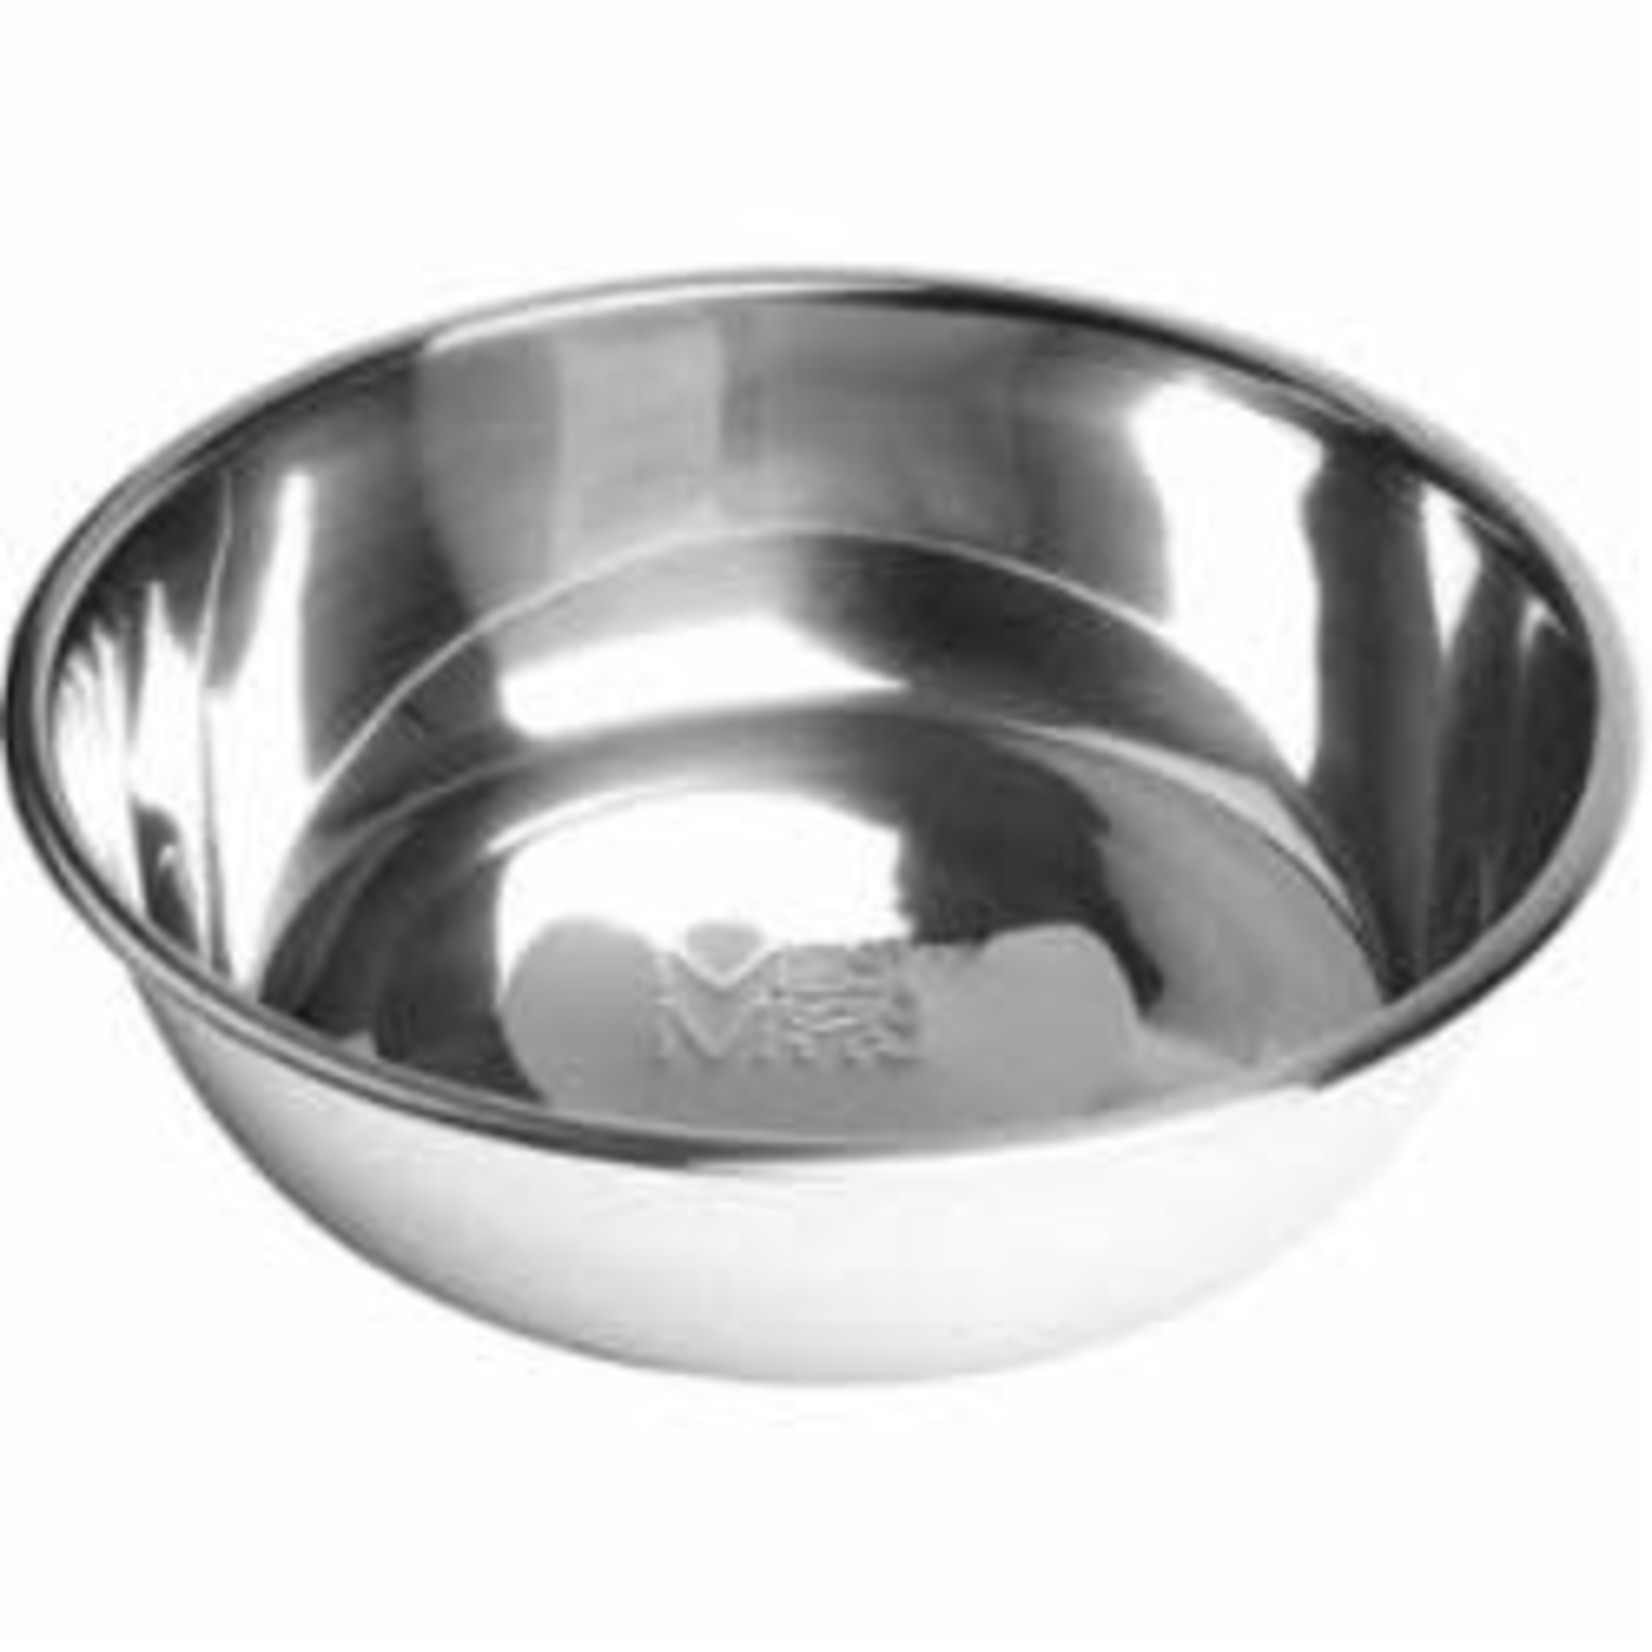 Messy Mutts Messy Mutts Stainless Steel Dog Bowl 6 CUP